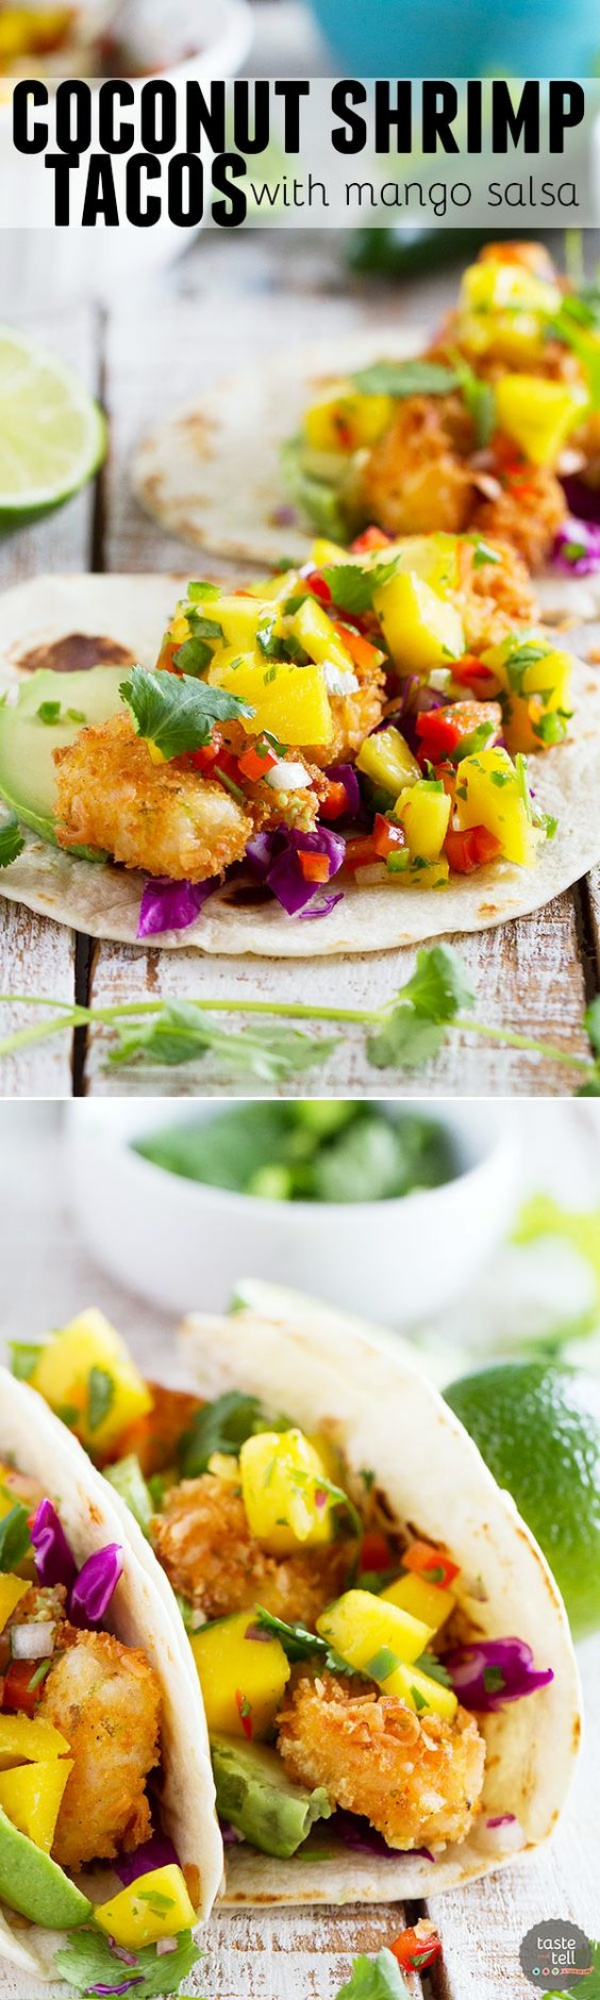 Easy To Cook Summer Food Ideas25